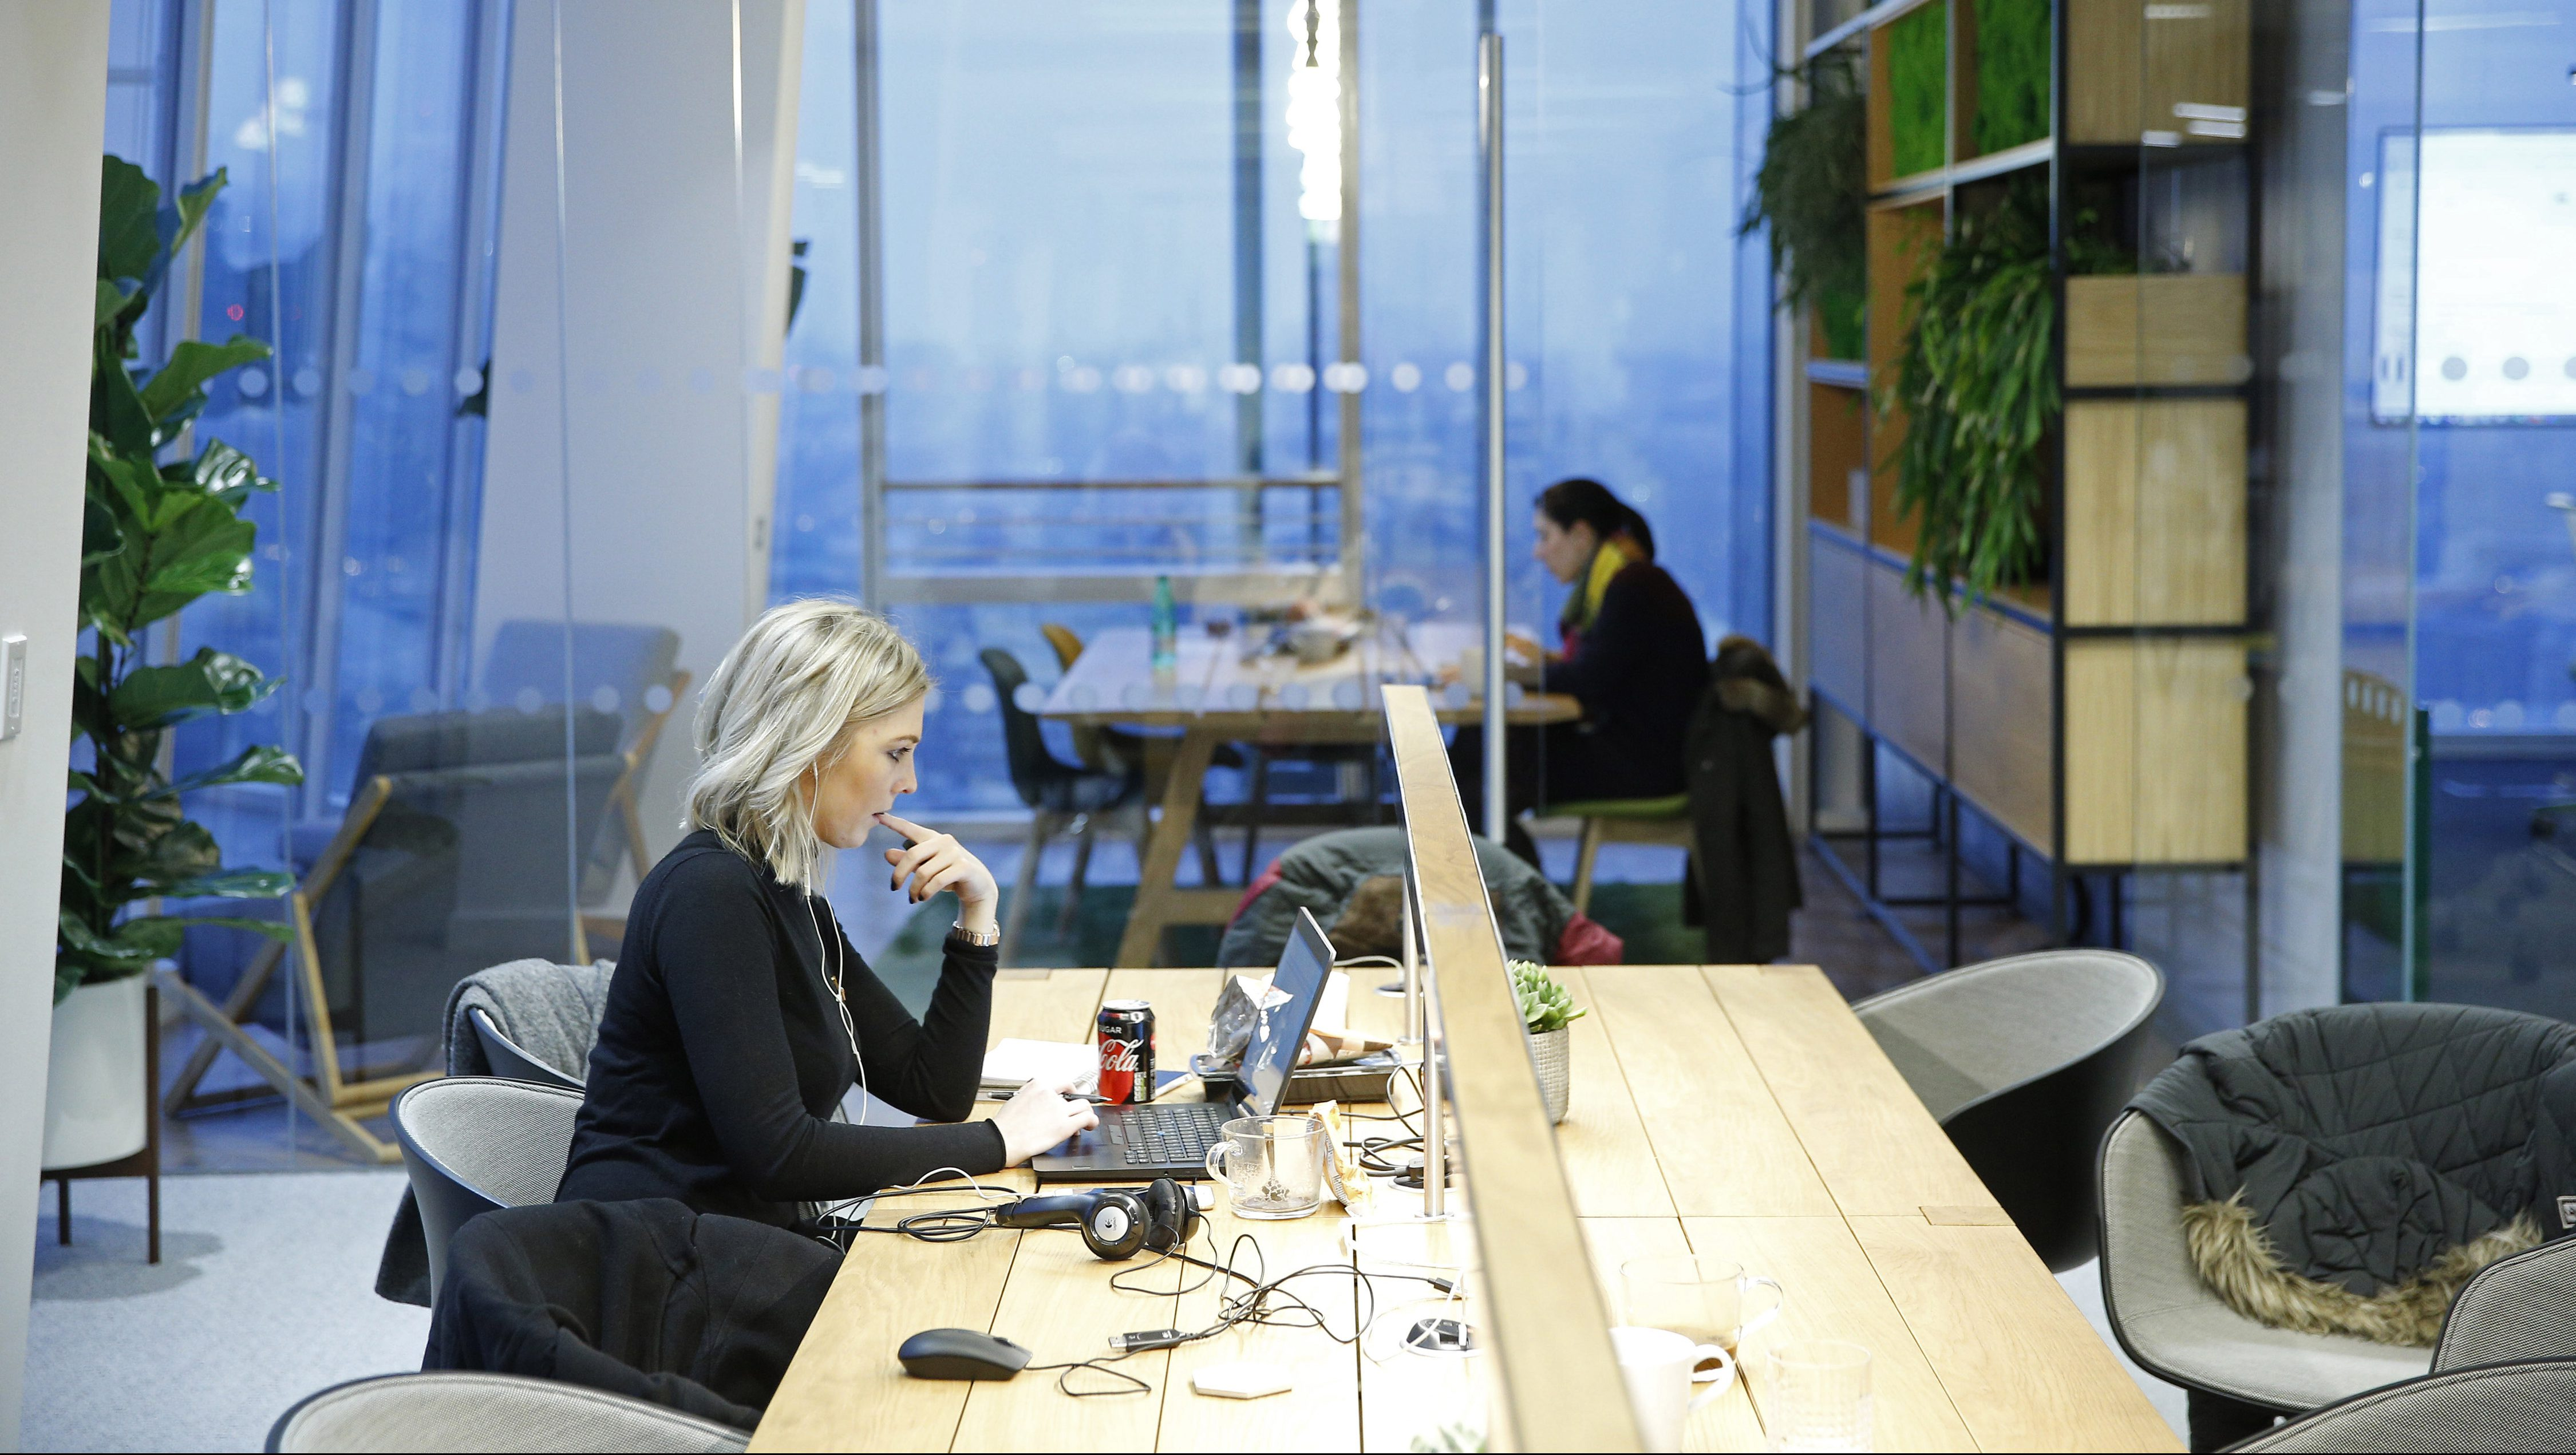 Workers sit at their desks at the Jellyfish office space in London, Britain December 19, 2016.